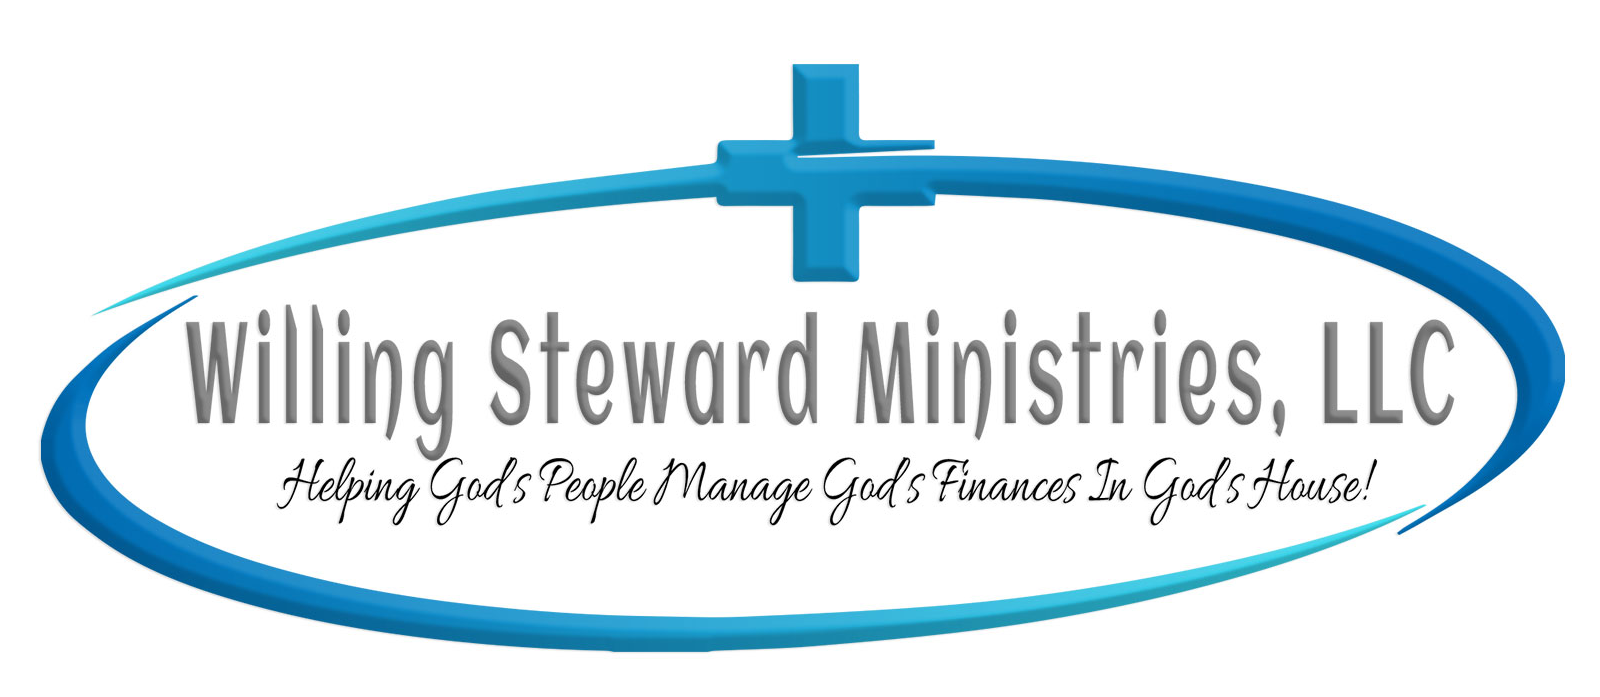 Willing Steward Ministries